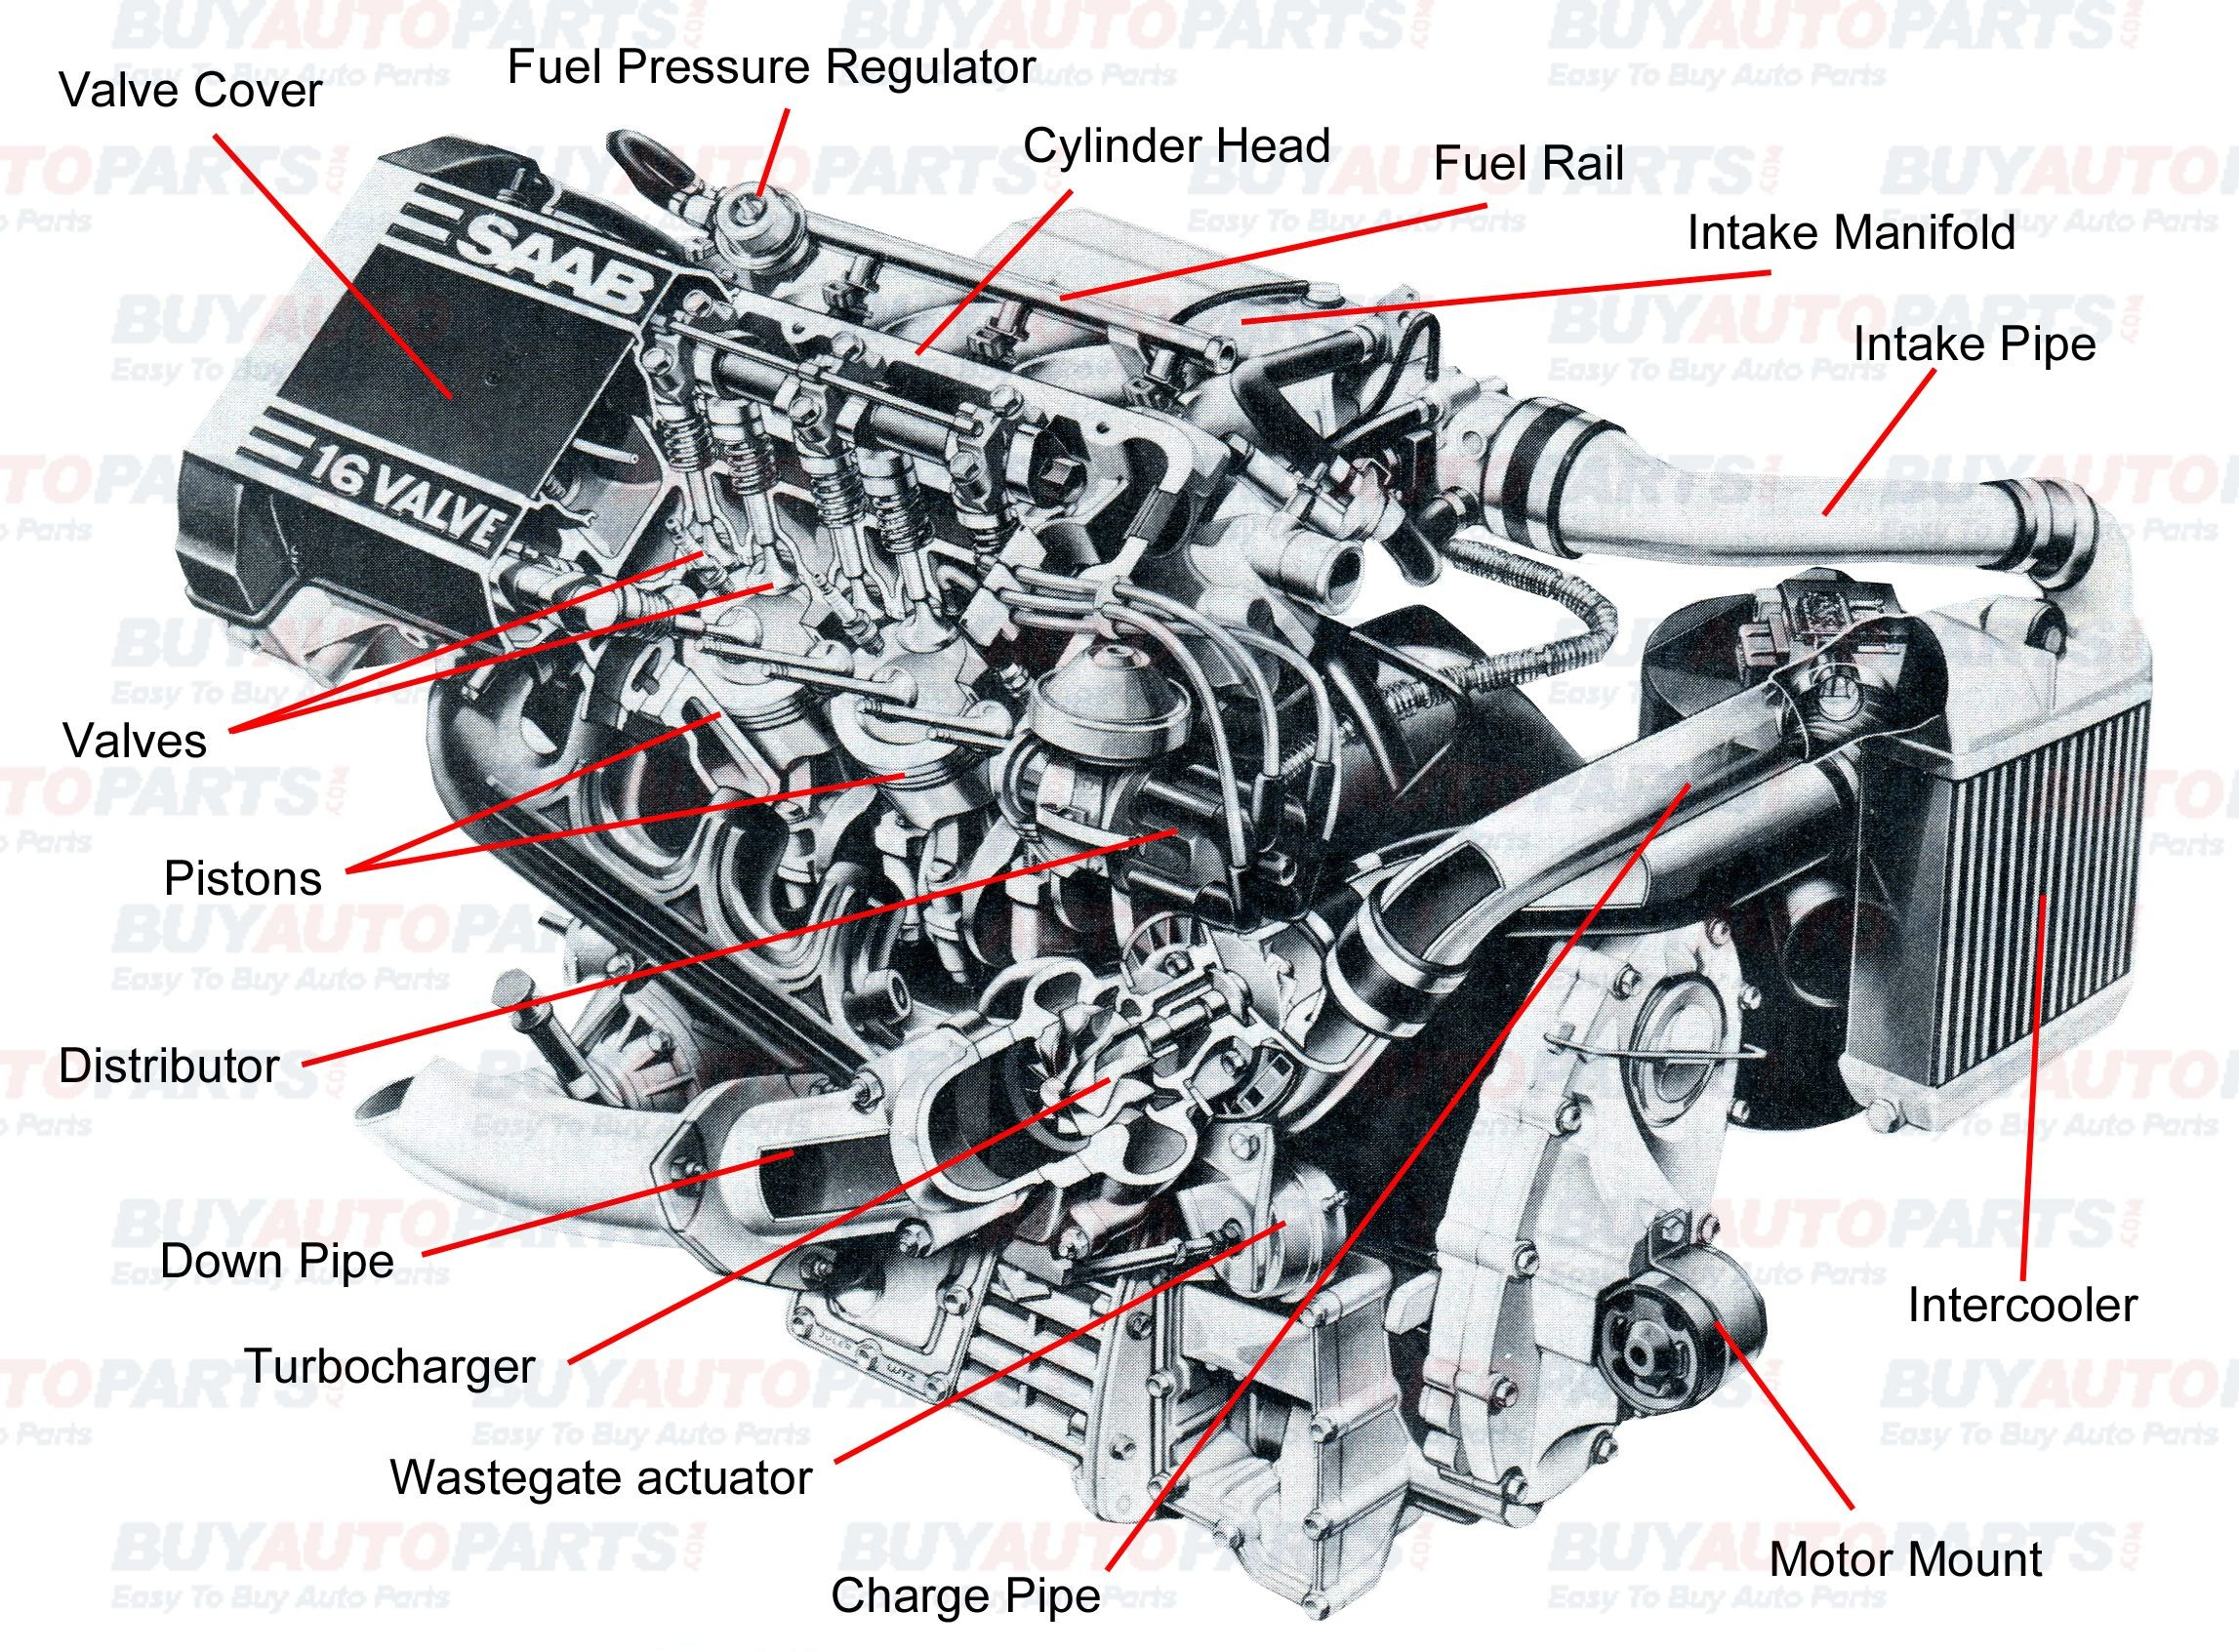 How Does A Motorcycle Engine Work Diagram Pin by Jimmiejanet Testellamwfz On What Does An Engine with Turbo Of How Does A Motorcycle Engine Work Diagram